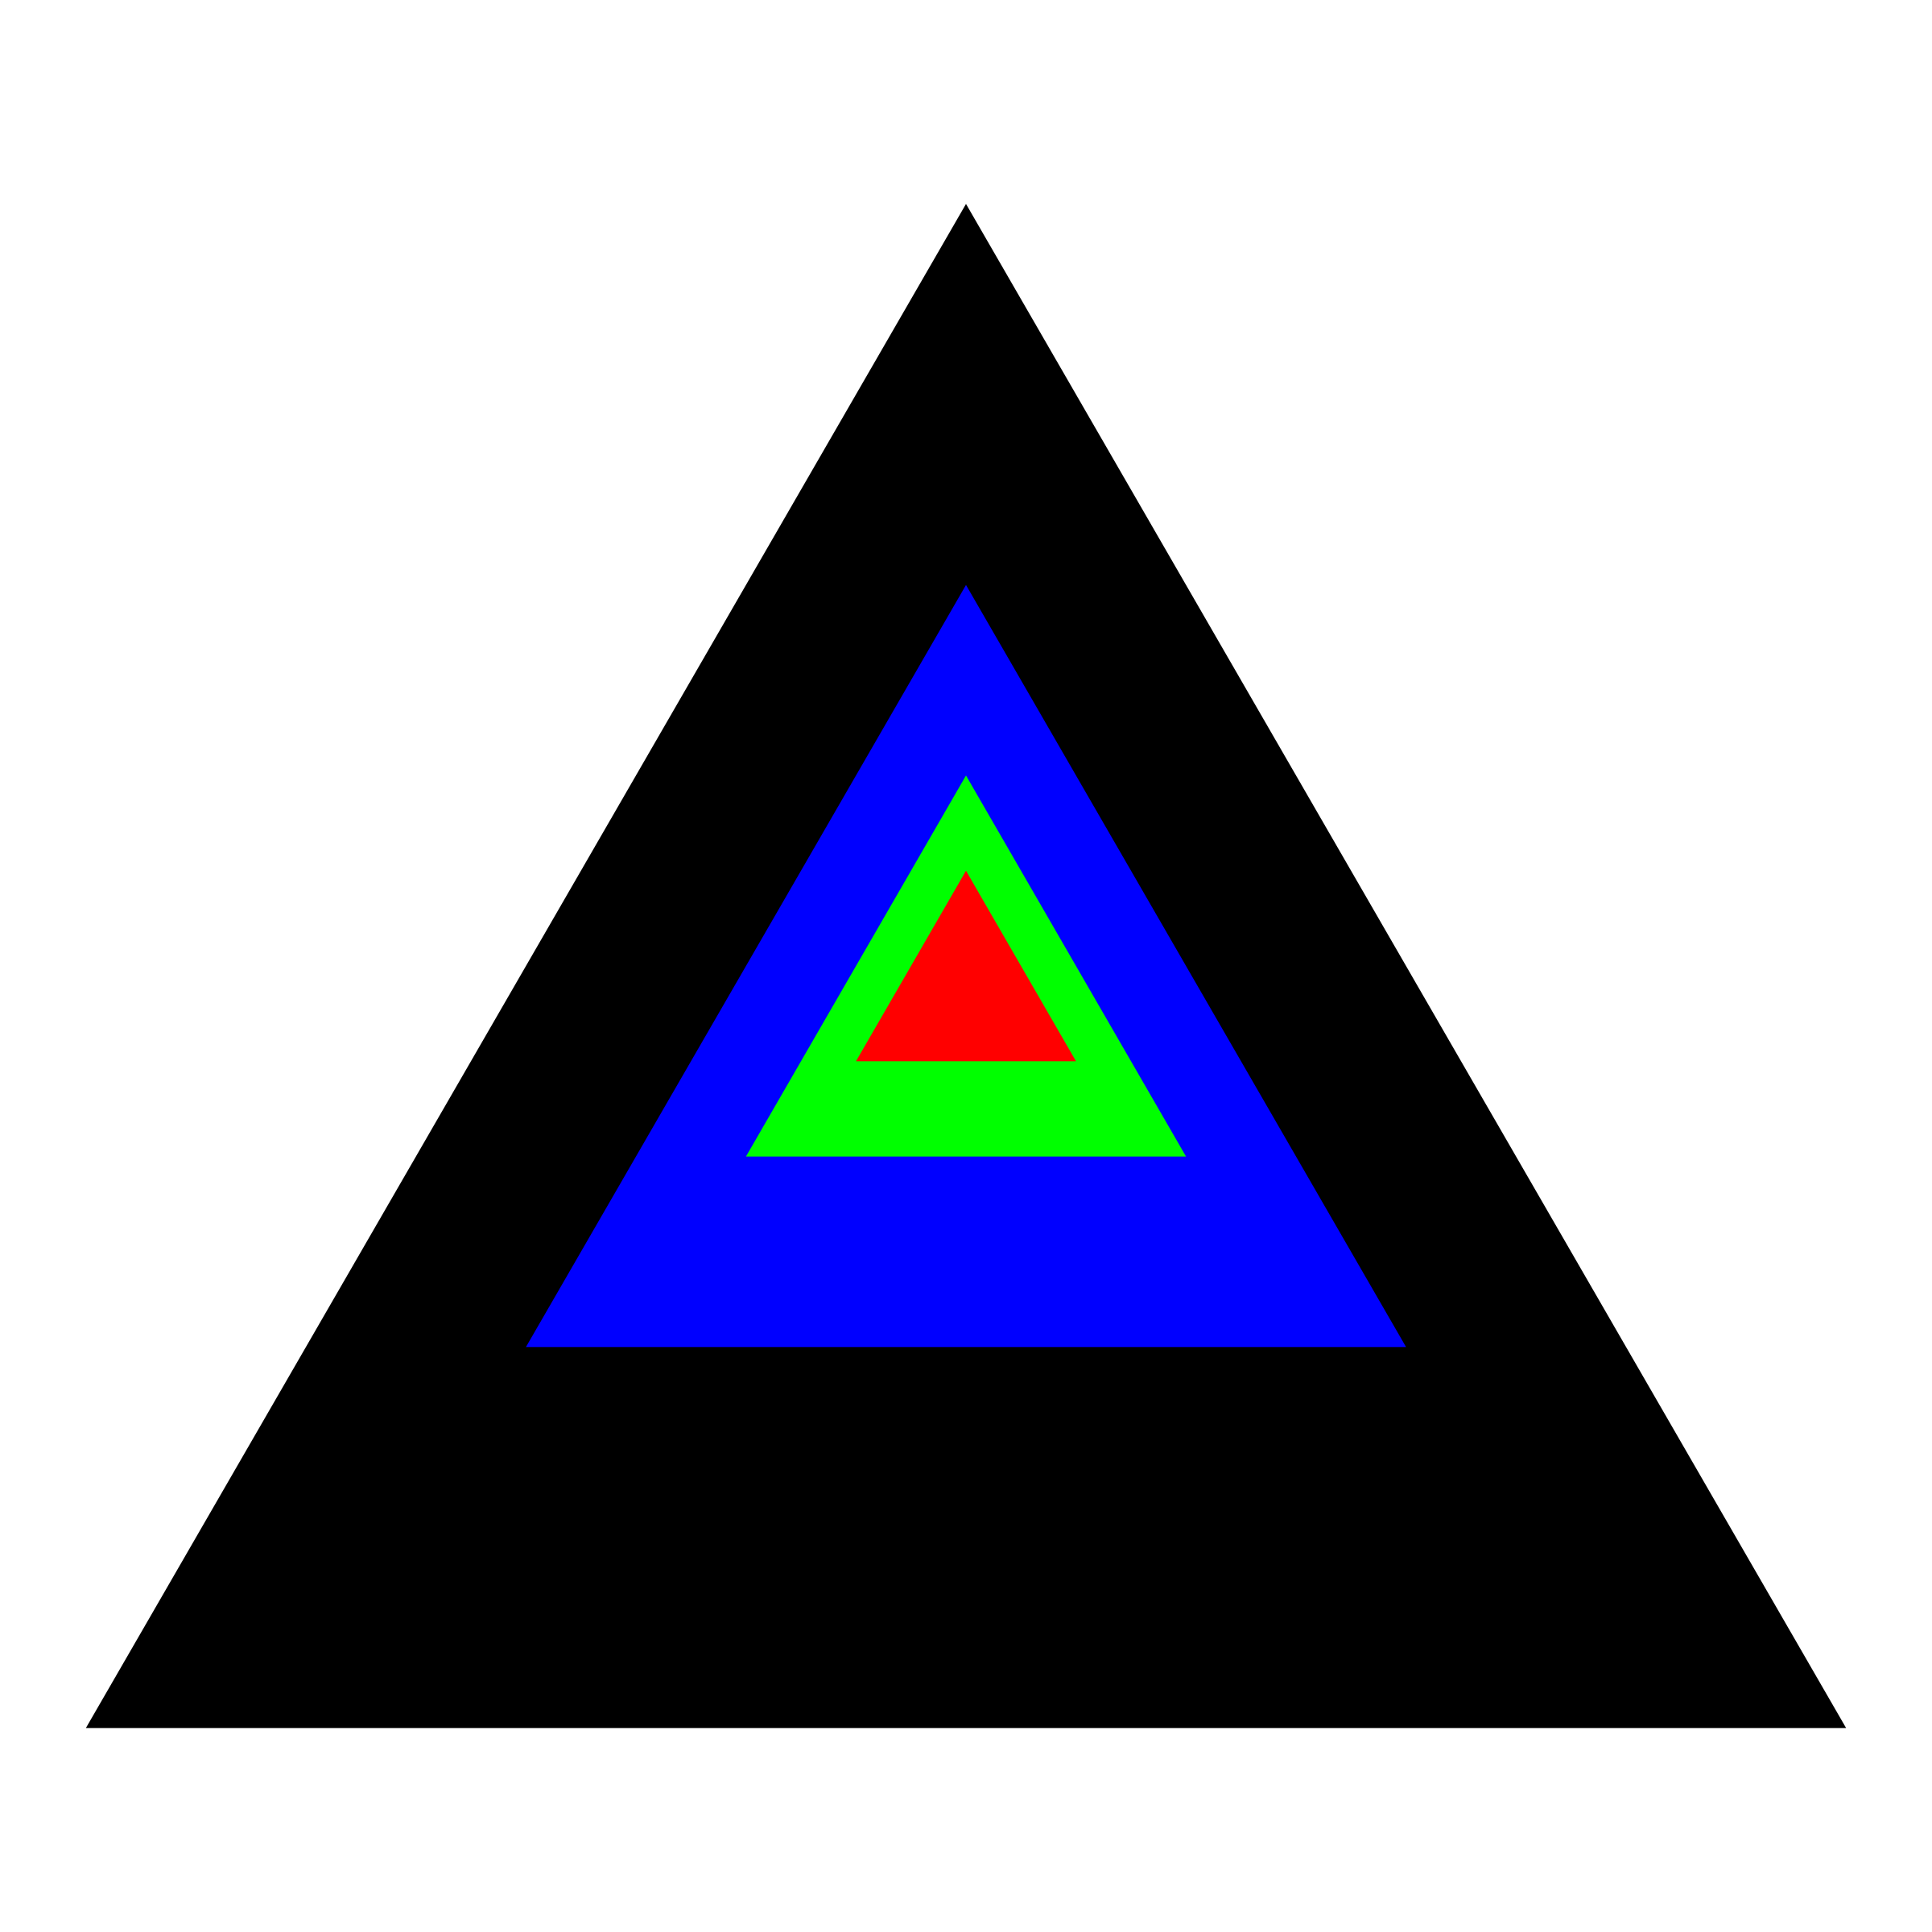 regular triangle discovery by 10binary